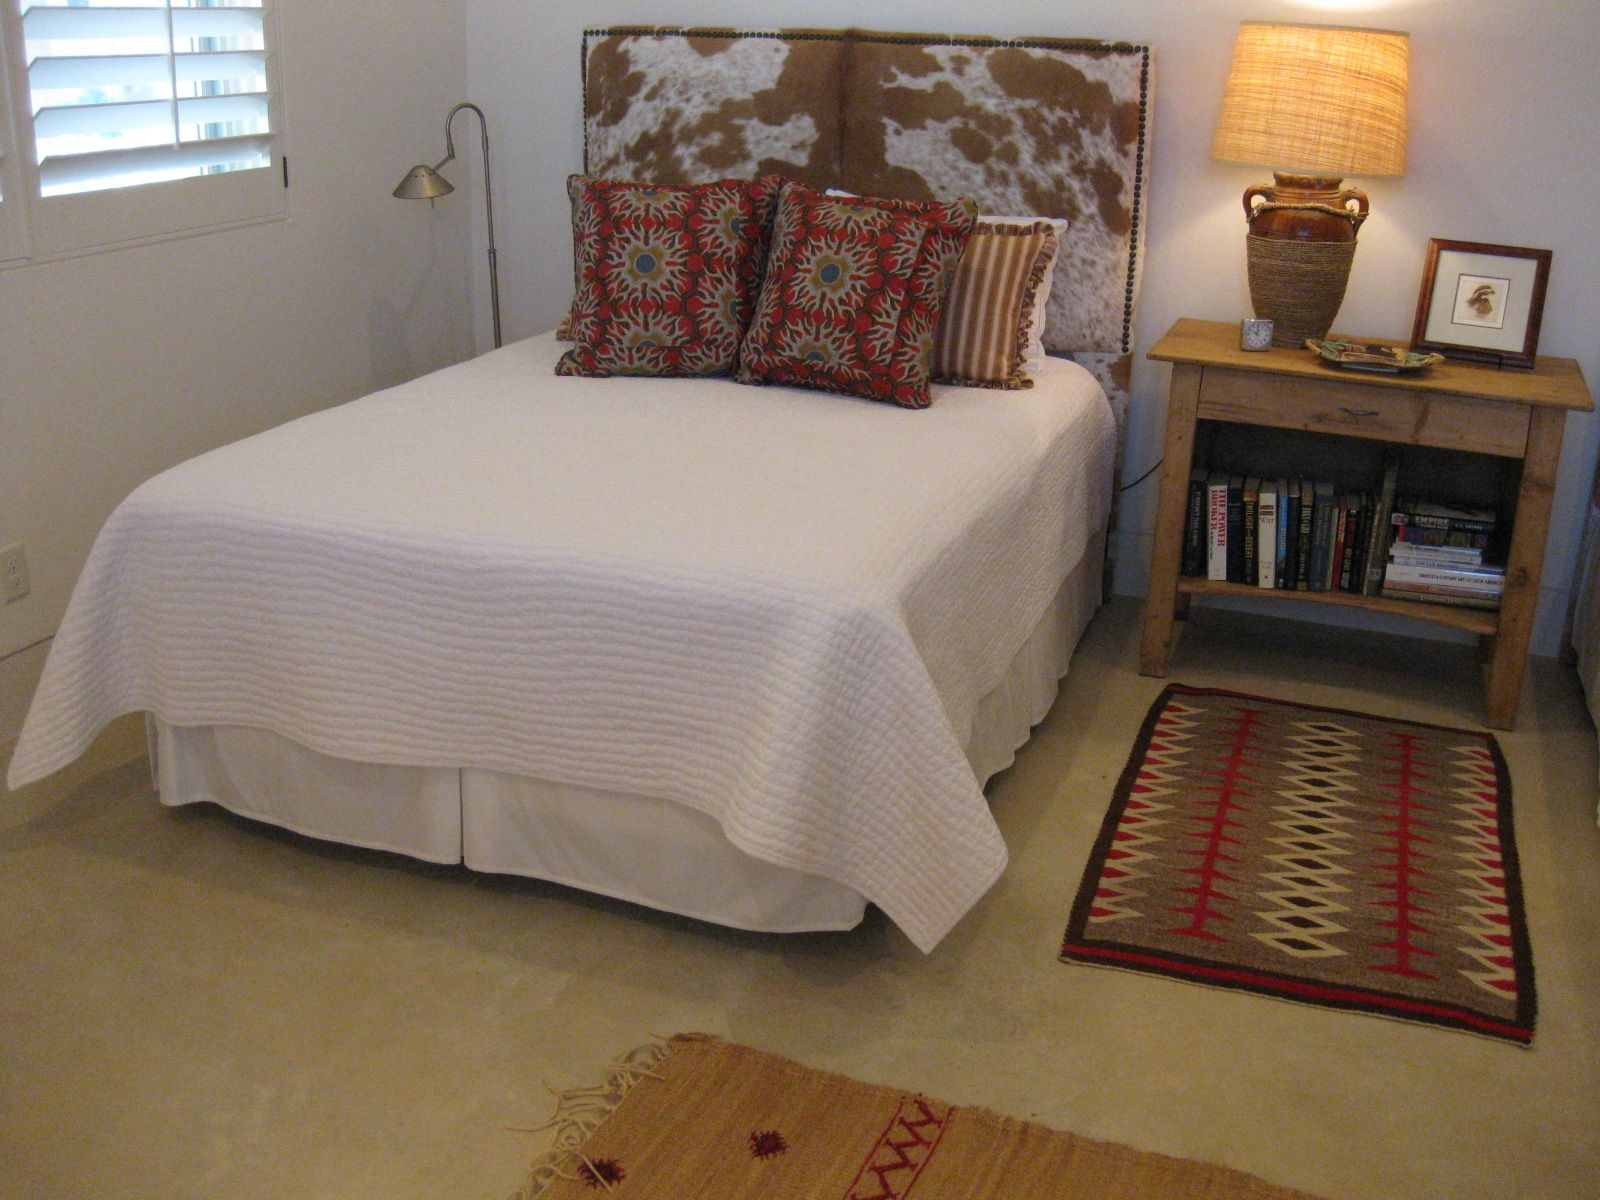 Guest House With Tony Duquette Tibetan Sun Pillows And Cowhide Headboard